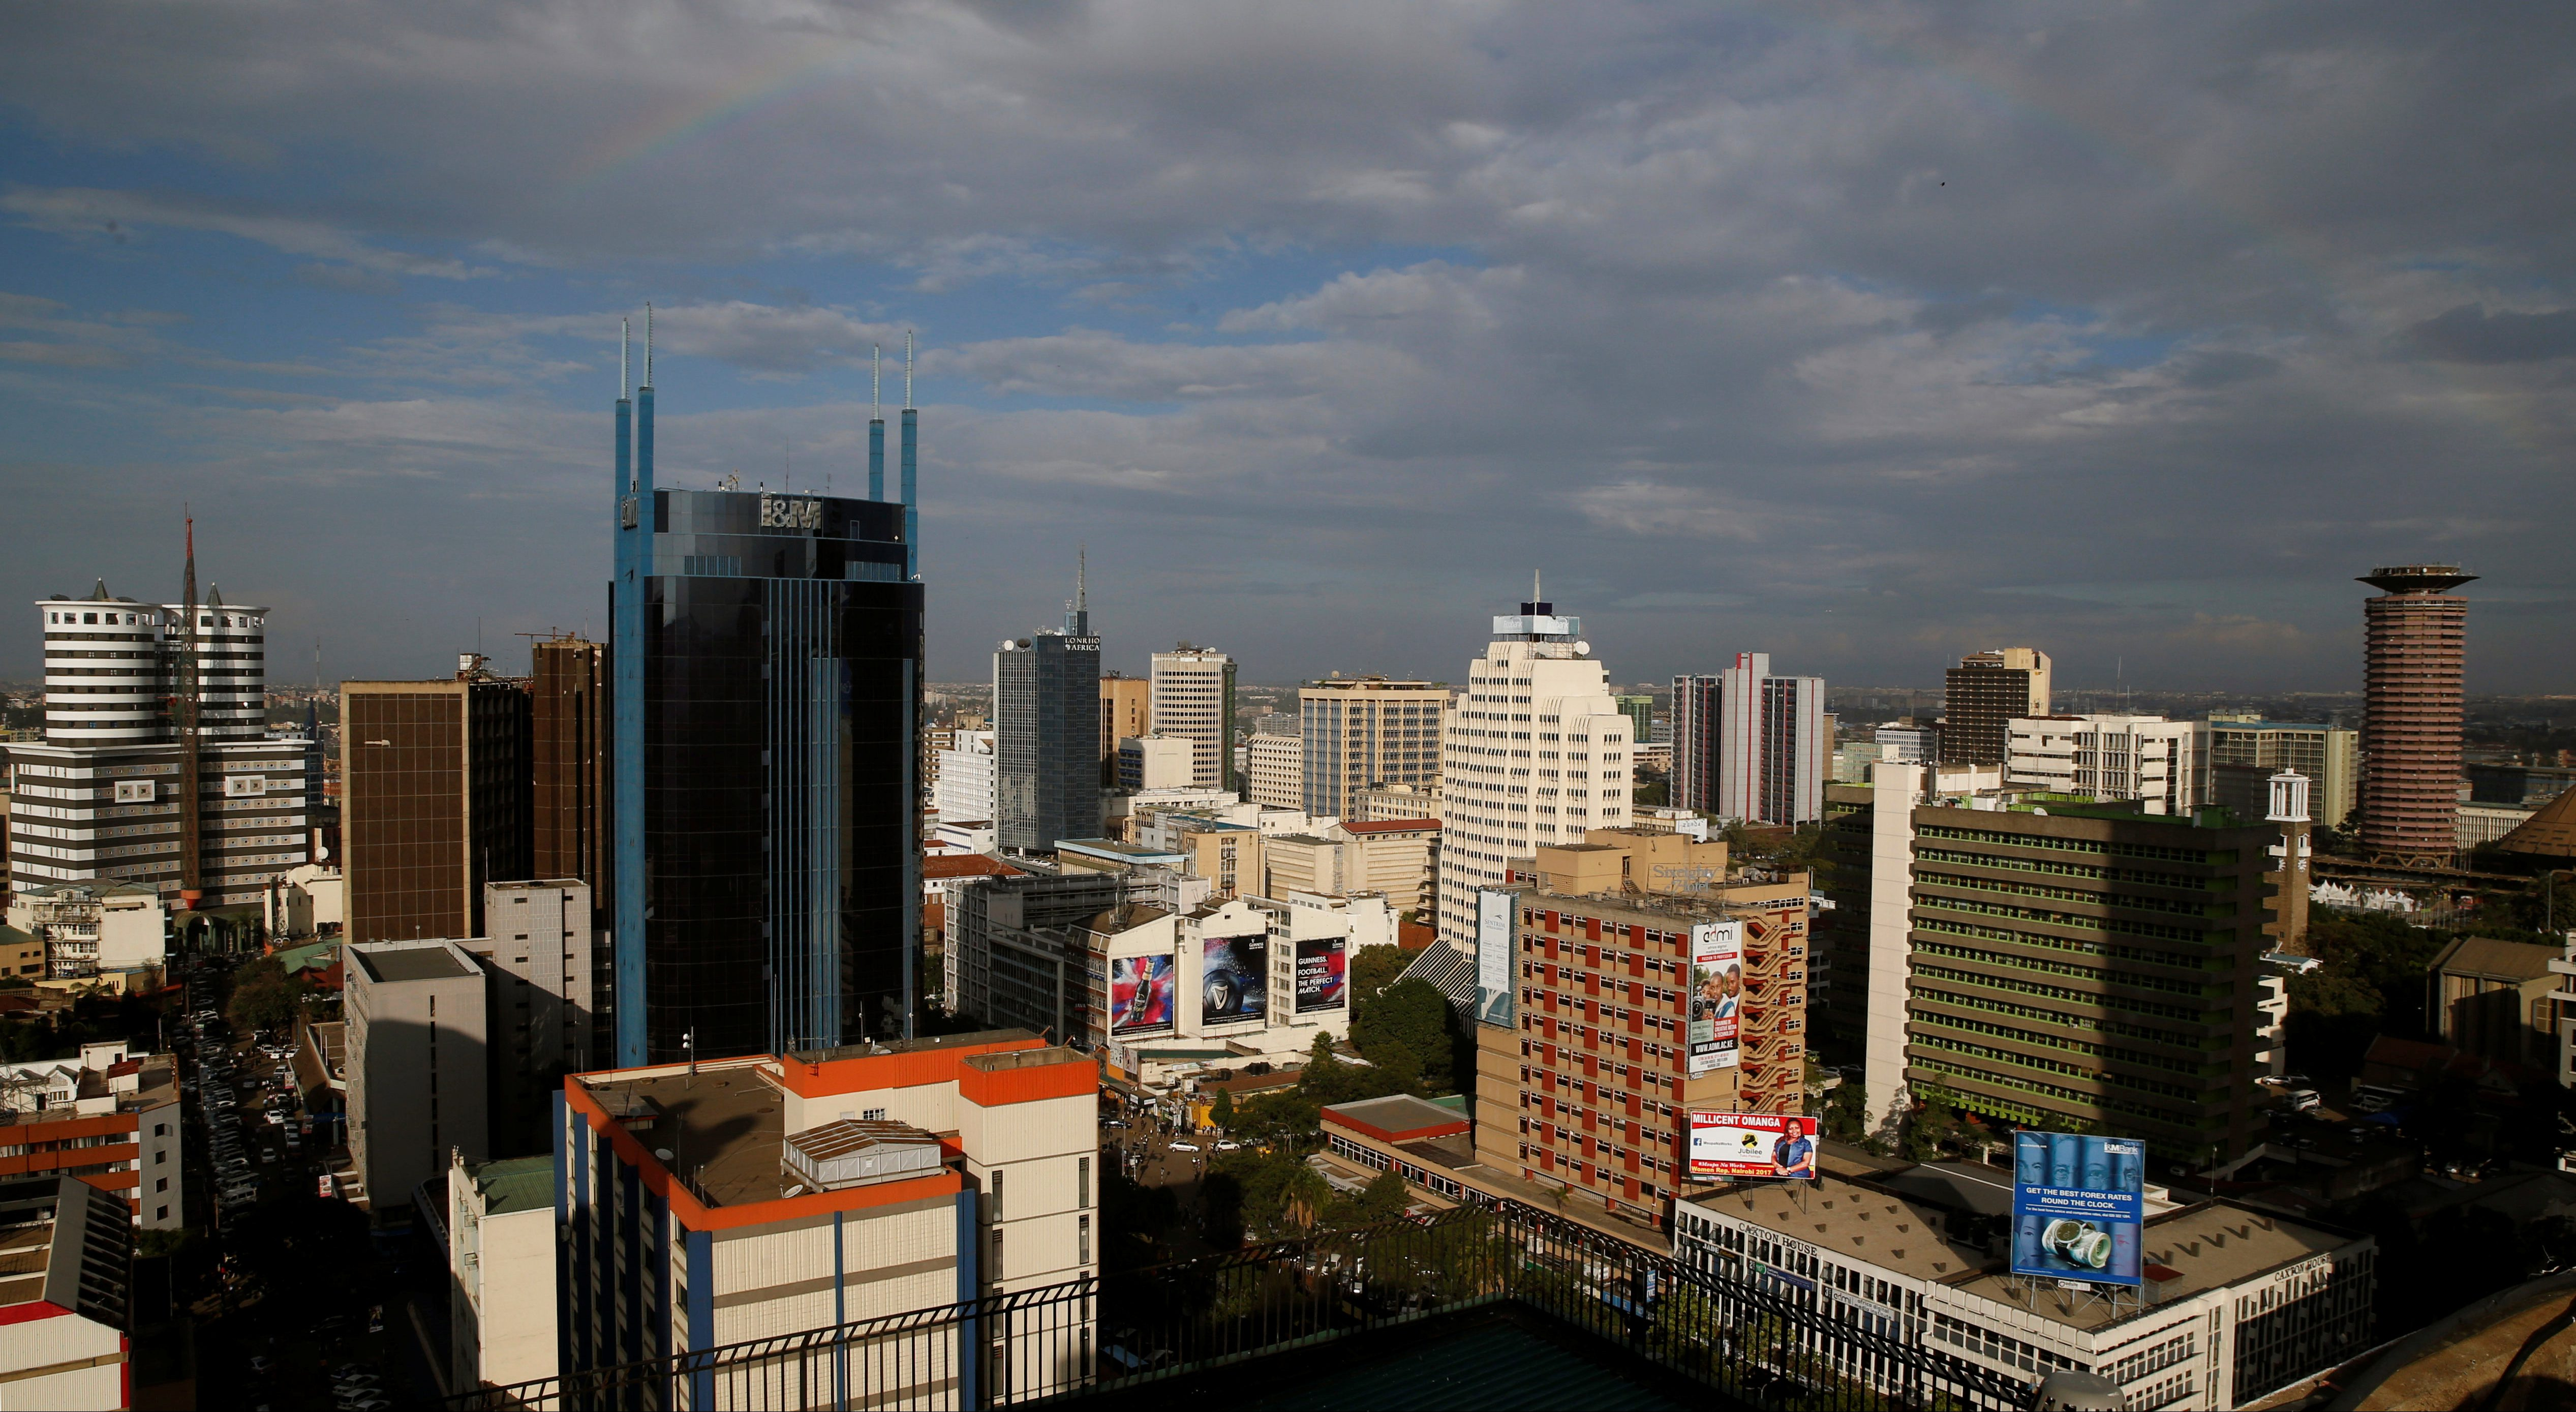 A general view shows the central business district of Kenya's capital Nairobi, April 10, 2017.